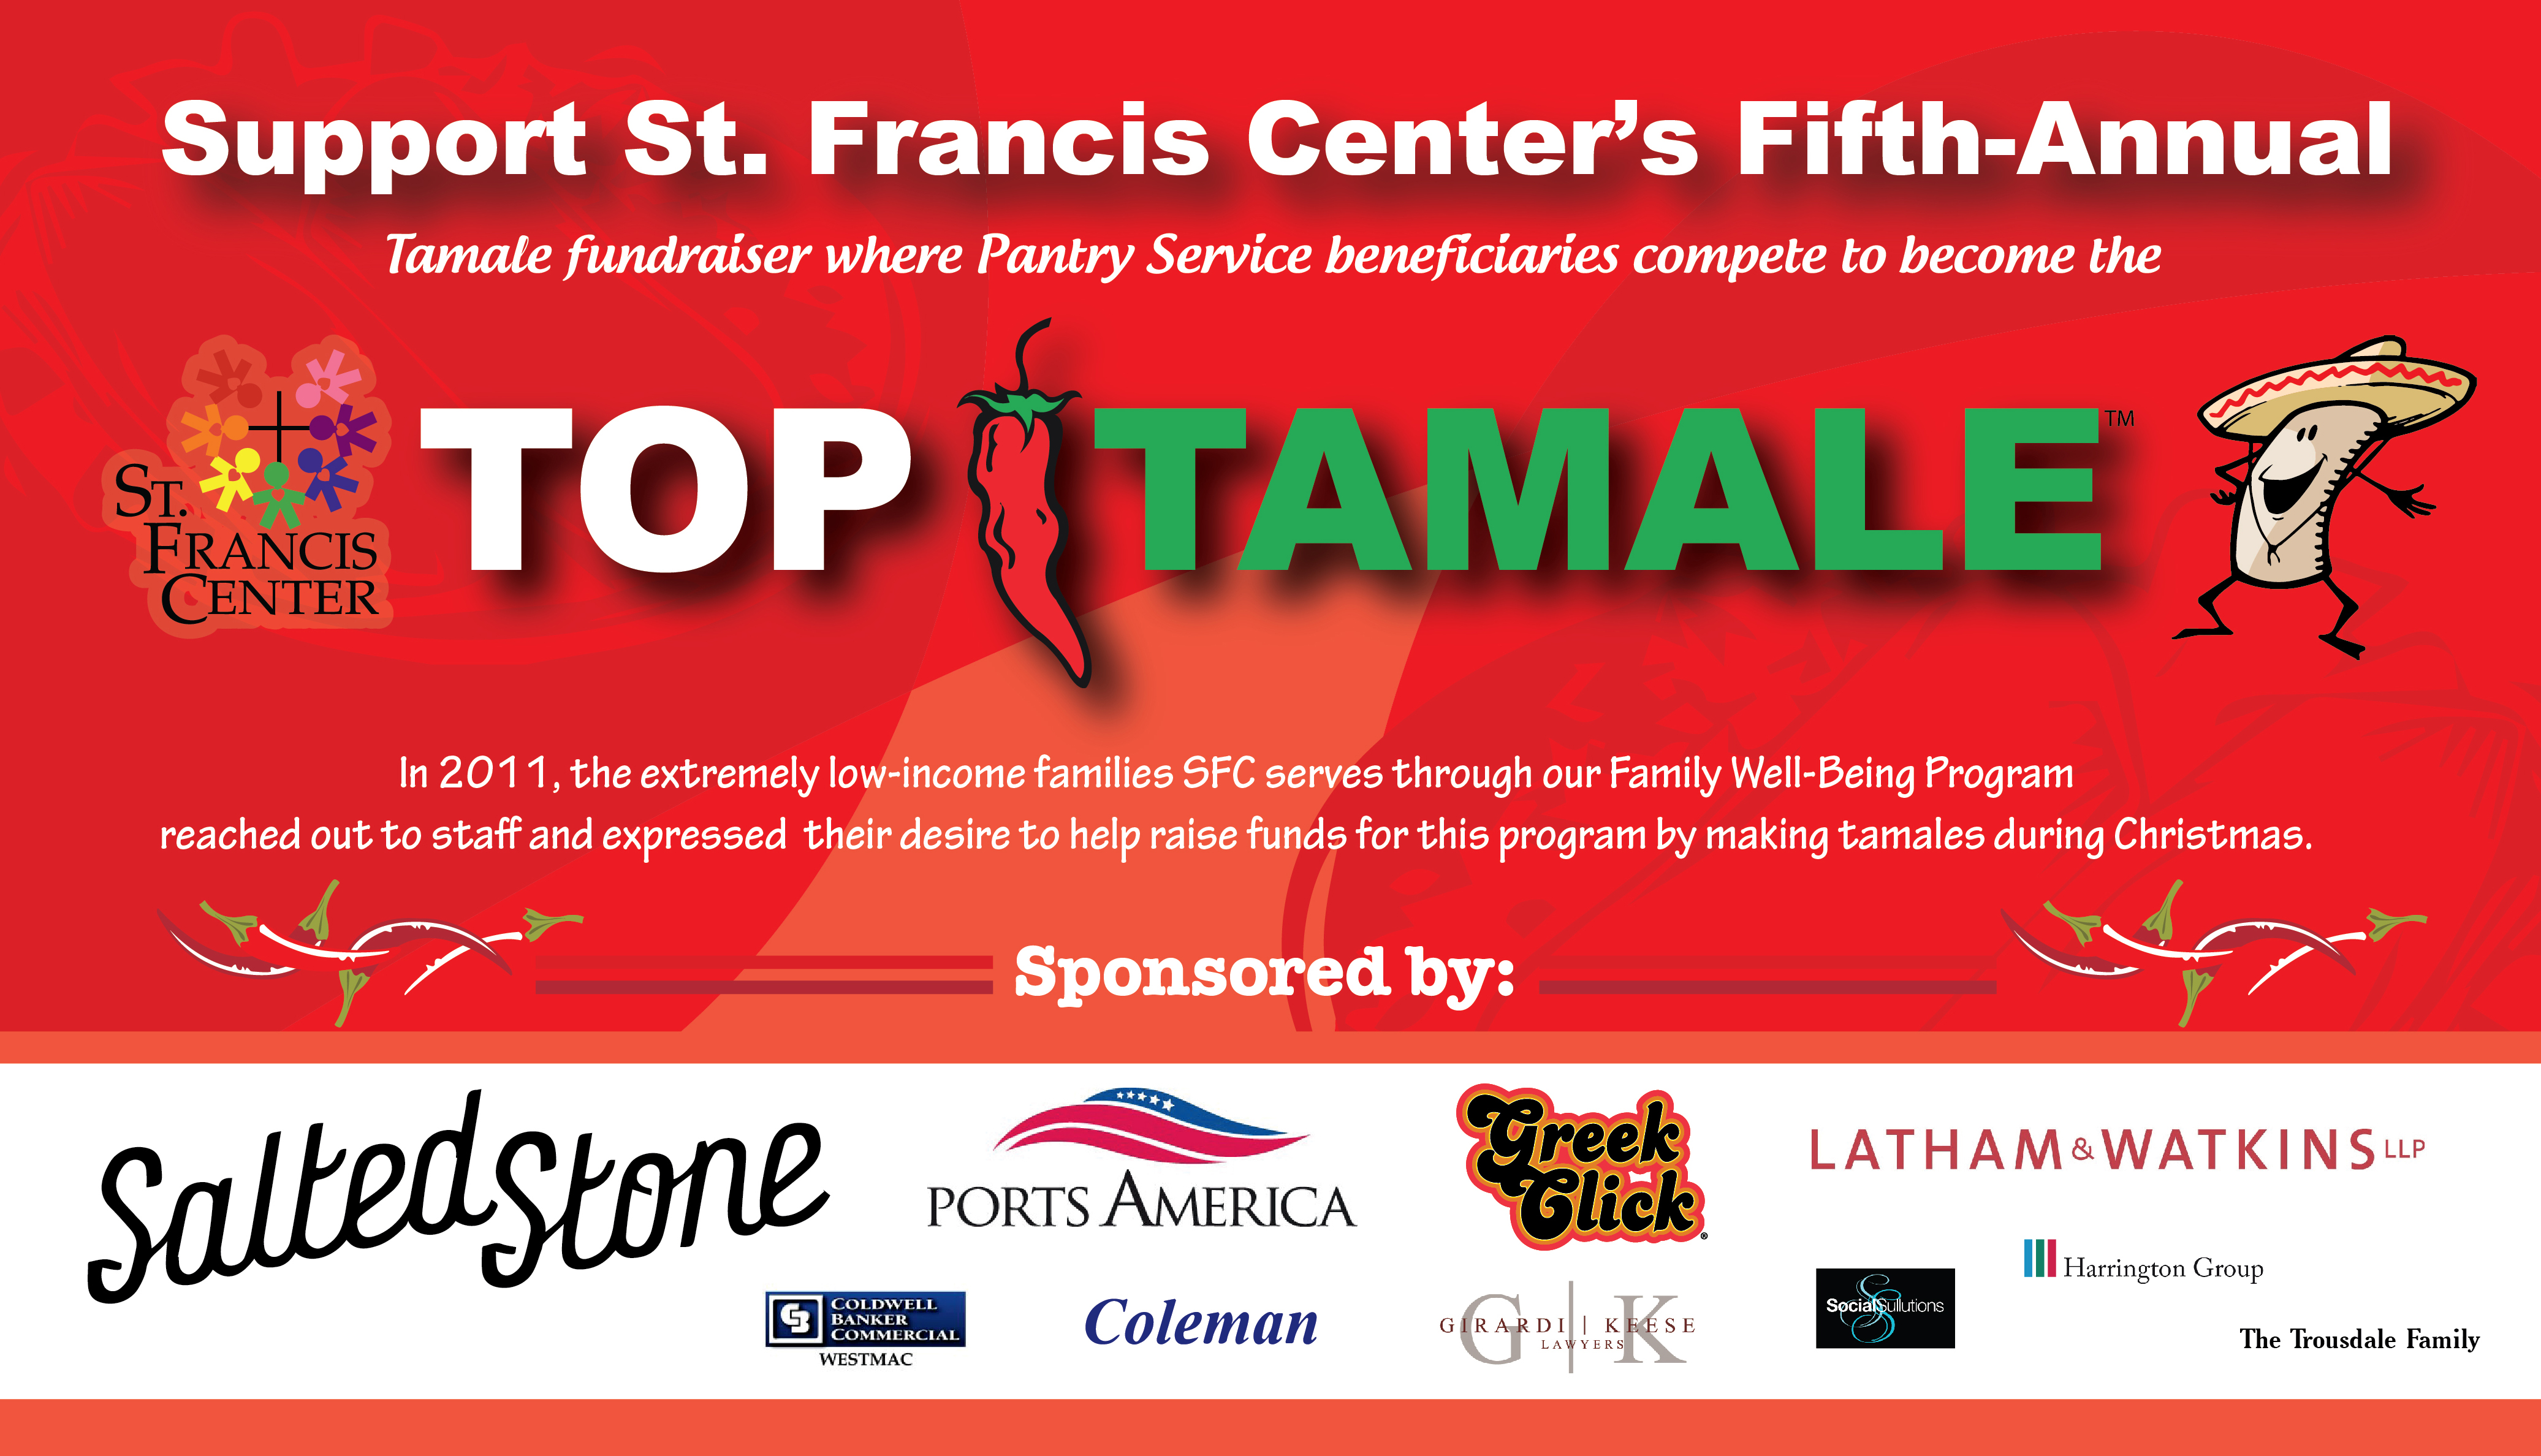 5th-Annual TOP TAMALE Fundraiser